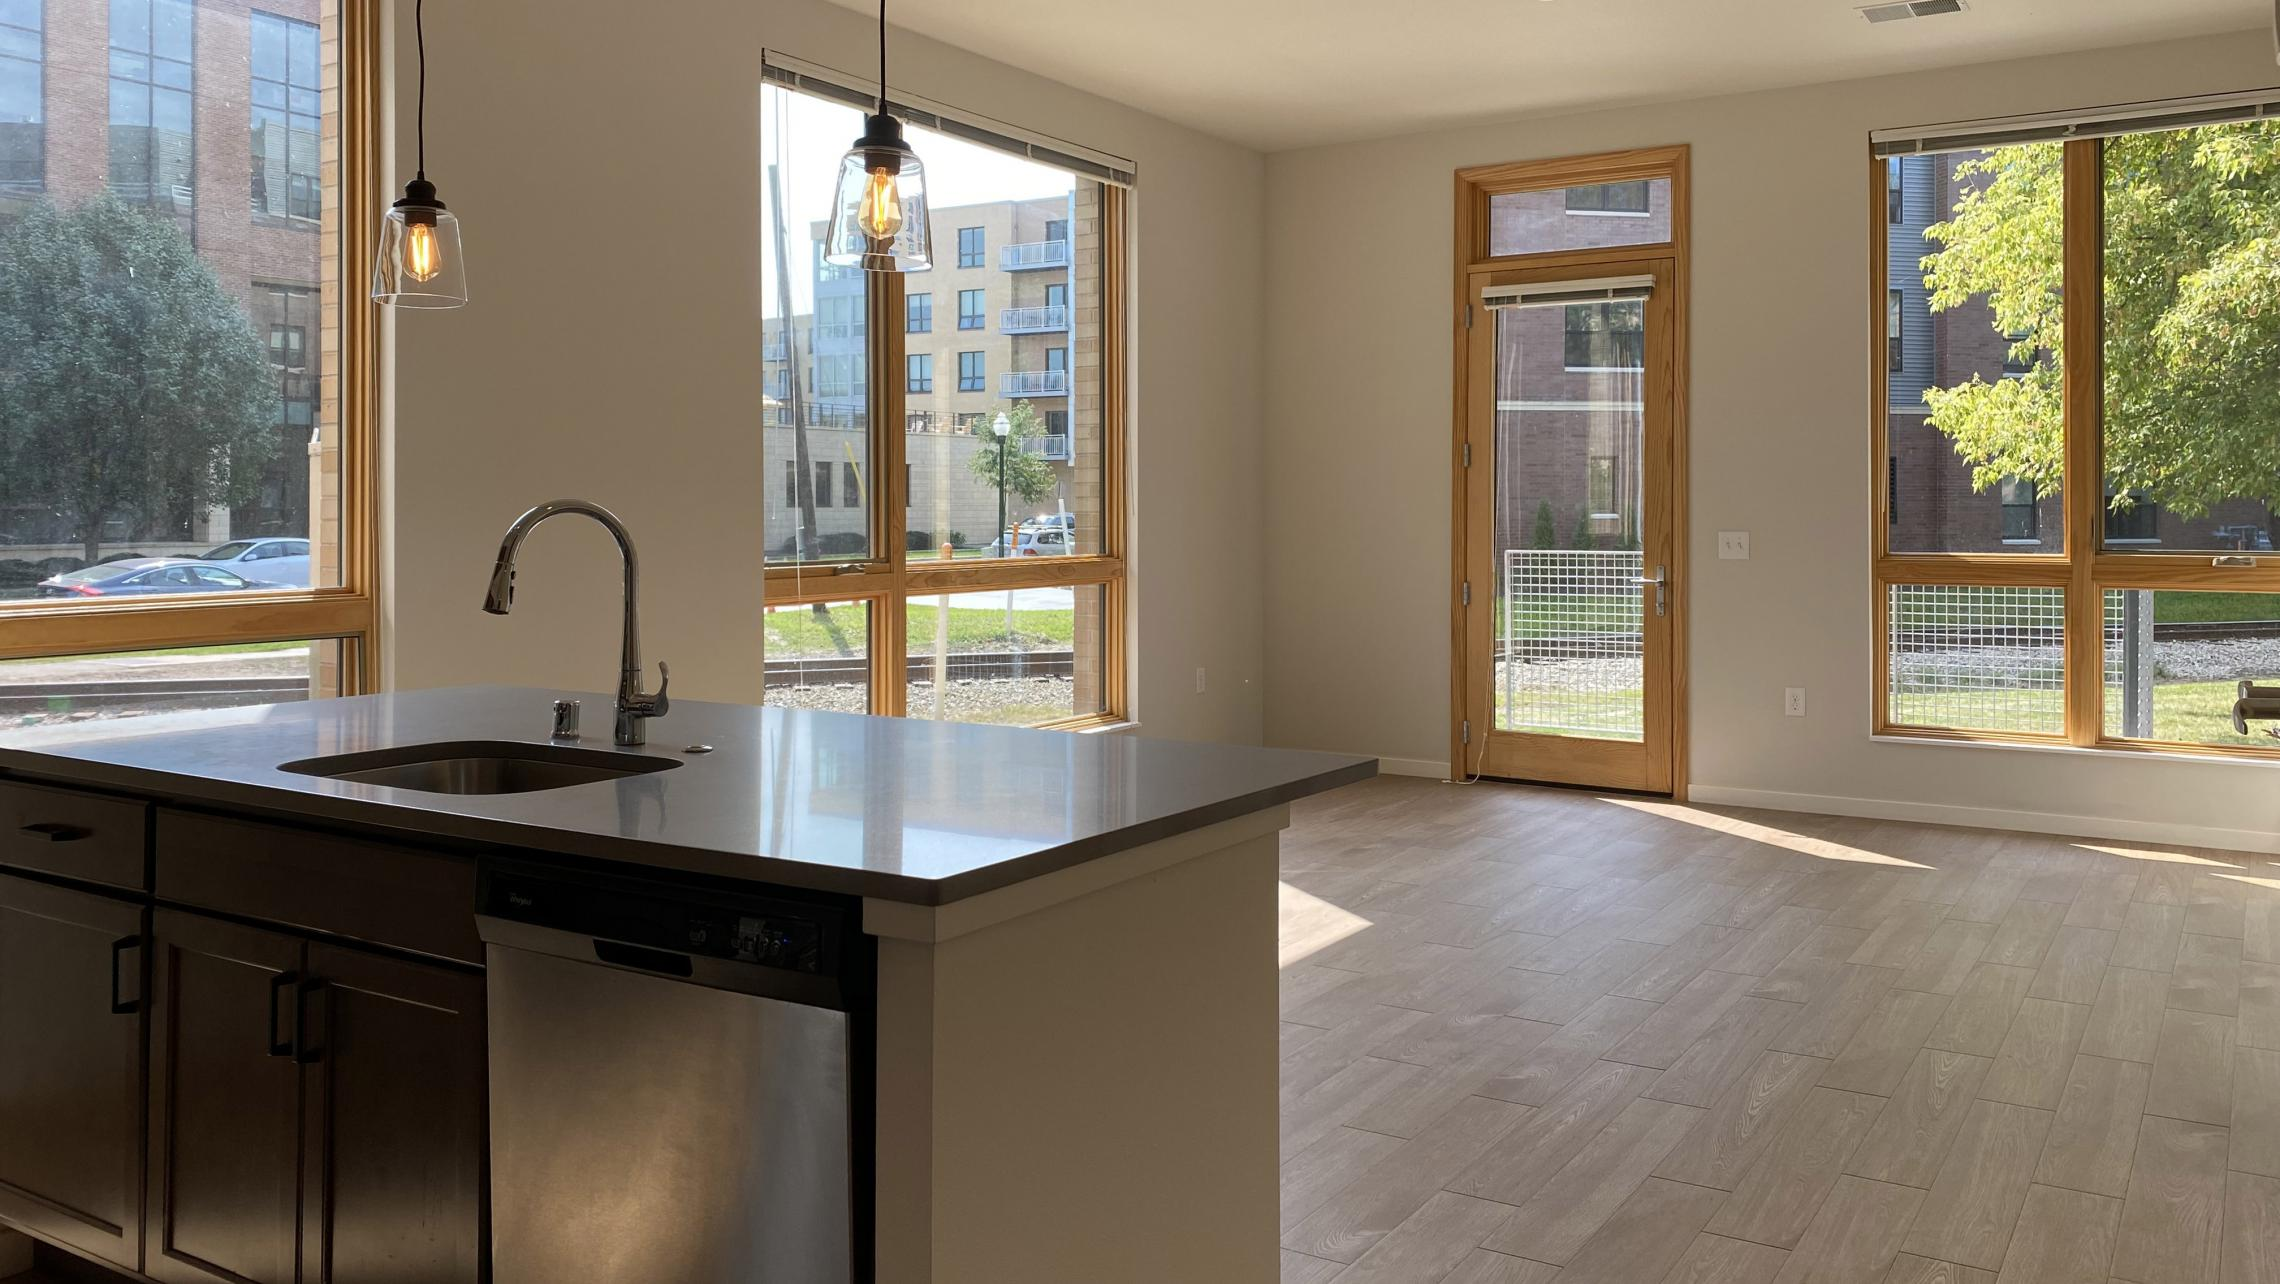 Quarter-Row-The-Yards-Apartment-102-Corner-Balcony-Downtown-Madison-Bike-Cat-Dog-Lifestule-Modern-Upscale-Design-Living-Kitchen.jpg